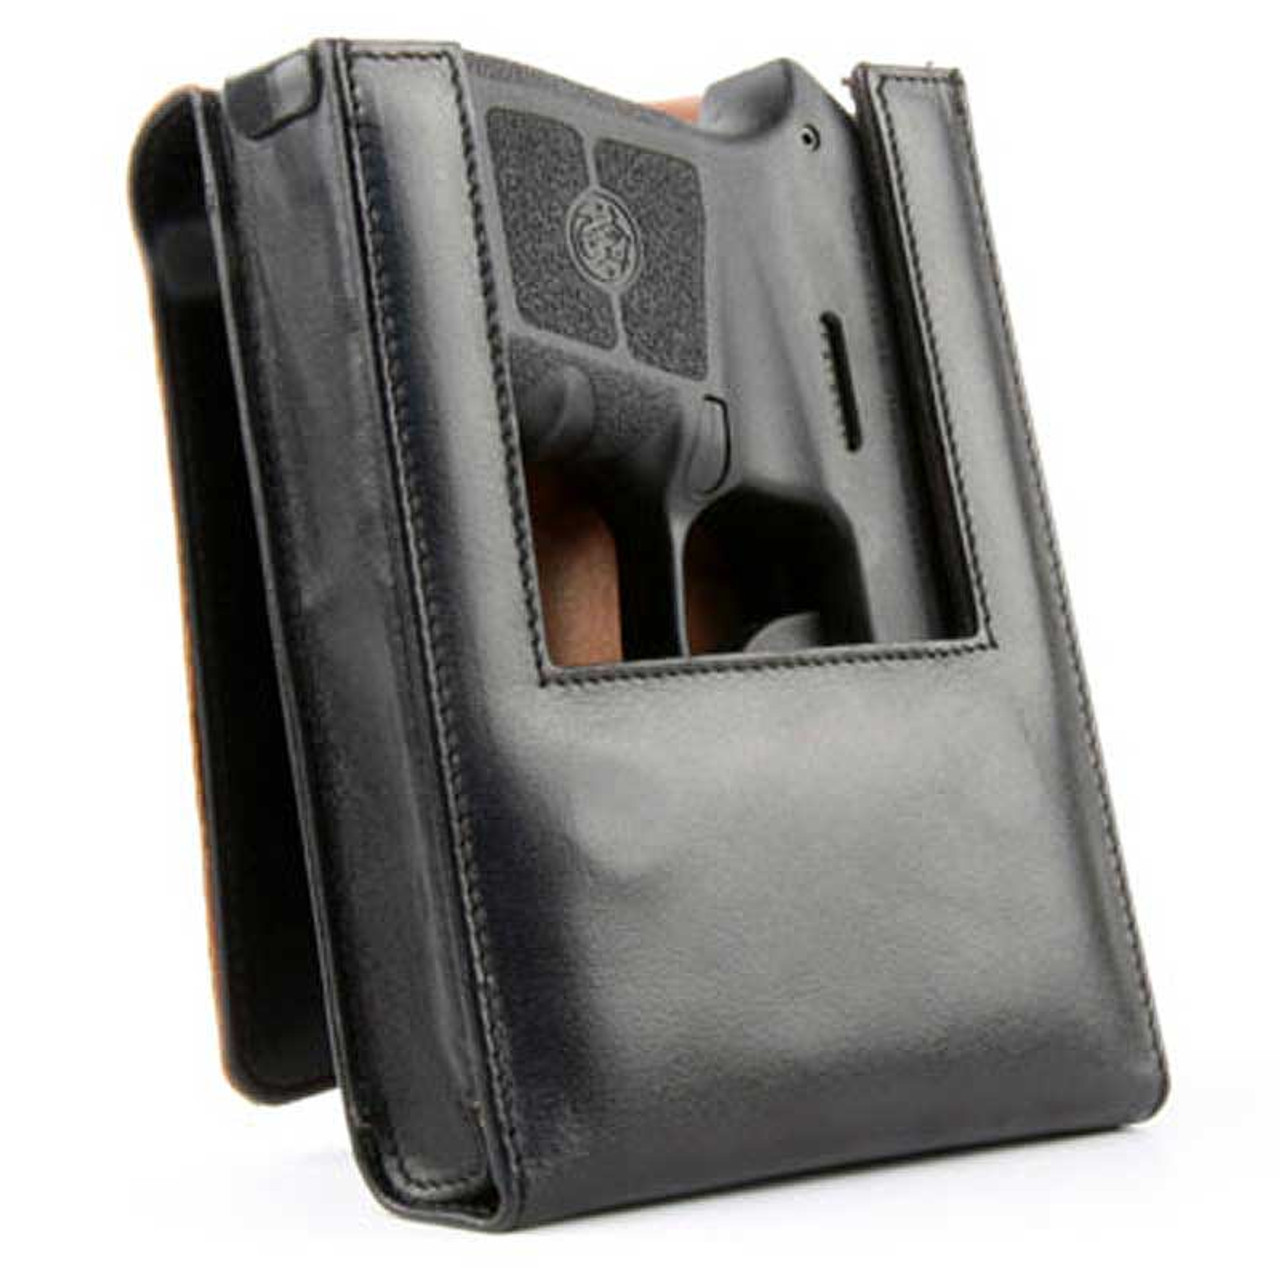 S&W Bodyguard 380 Concealed Carry Holster (Belt Loop)